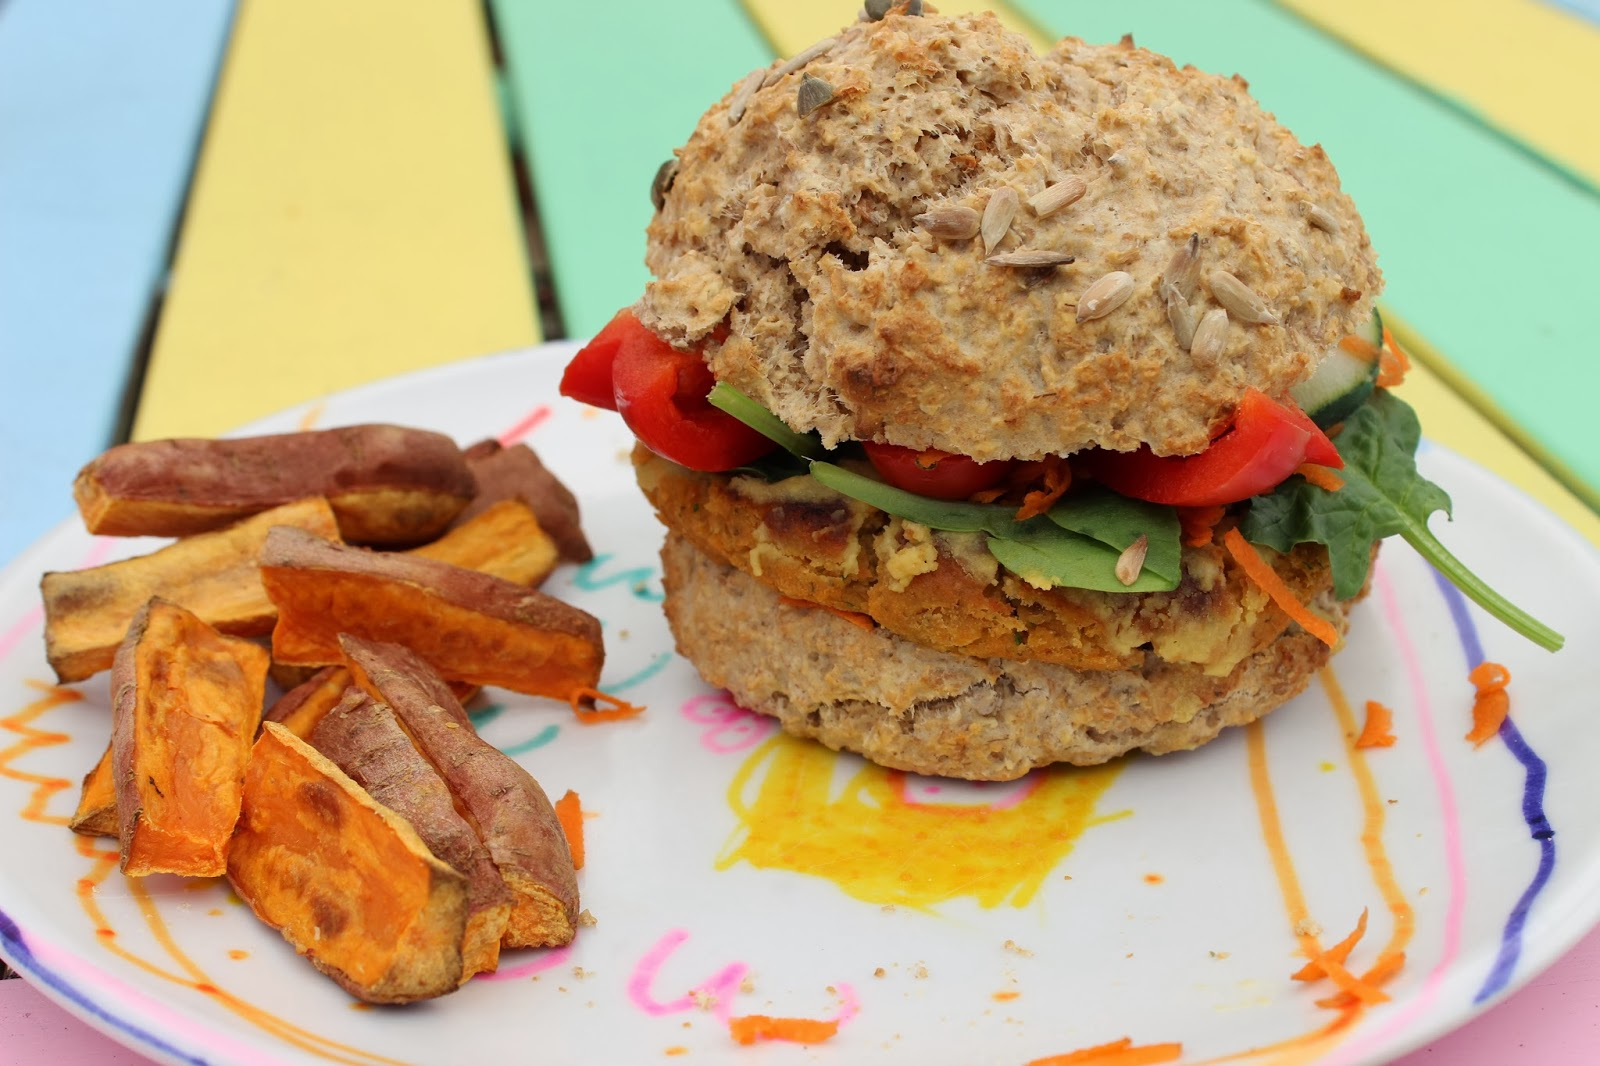 The ultimate veggie burger!